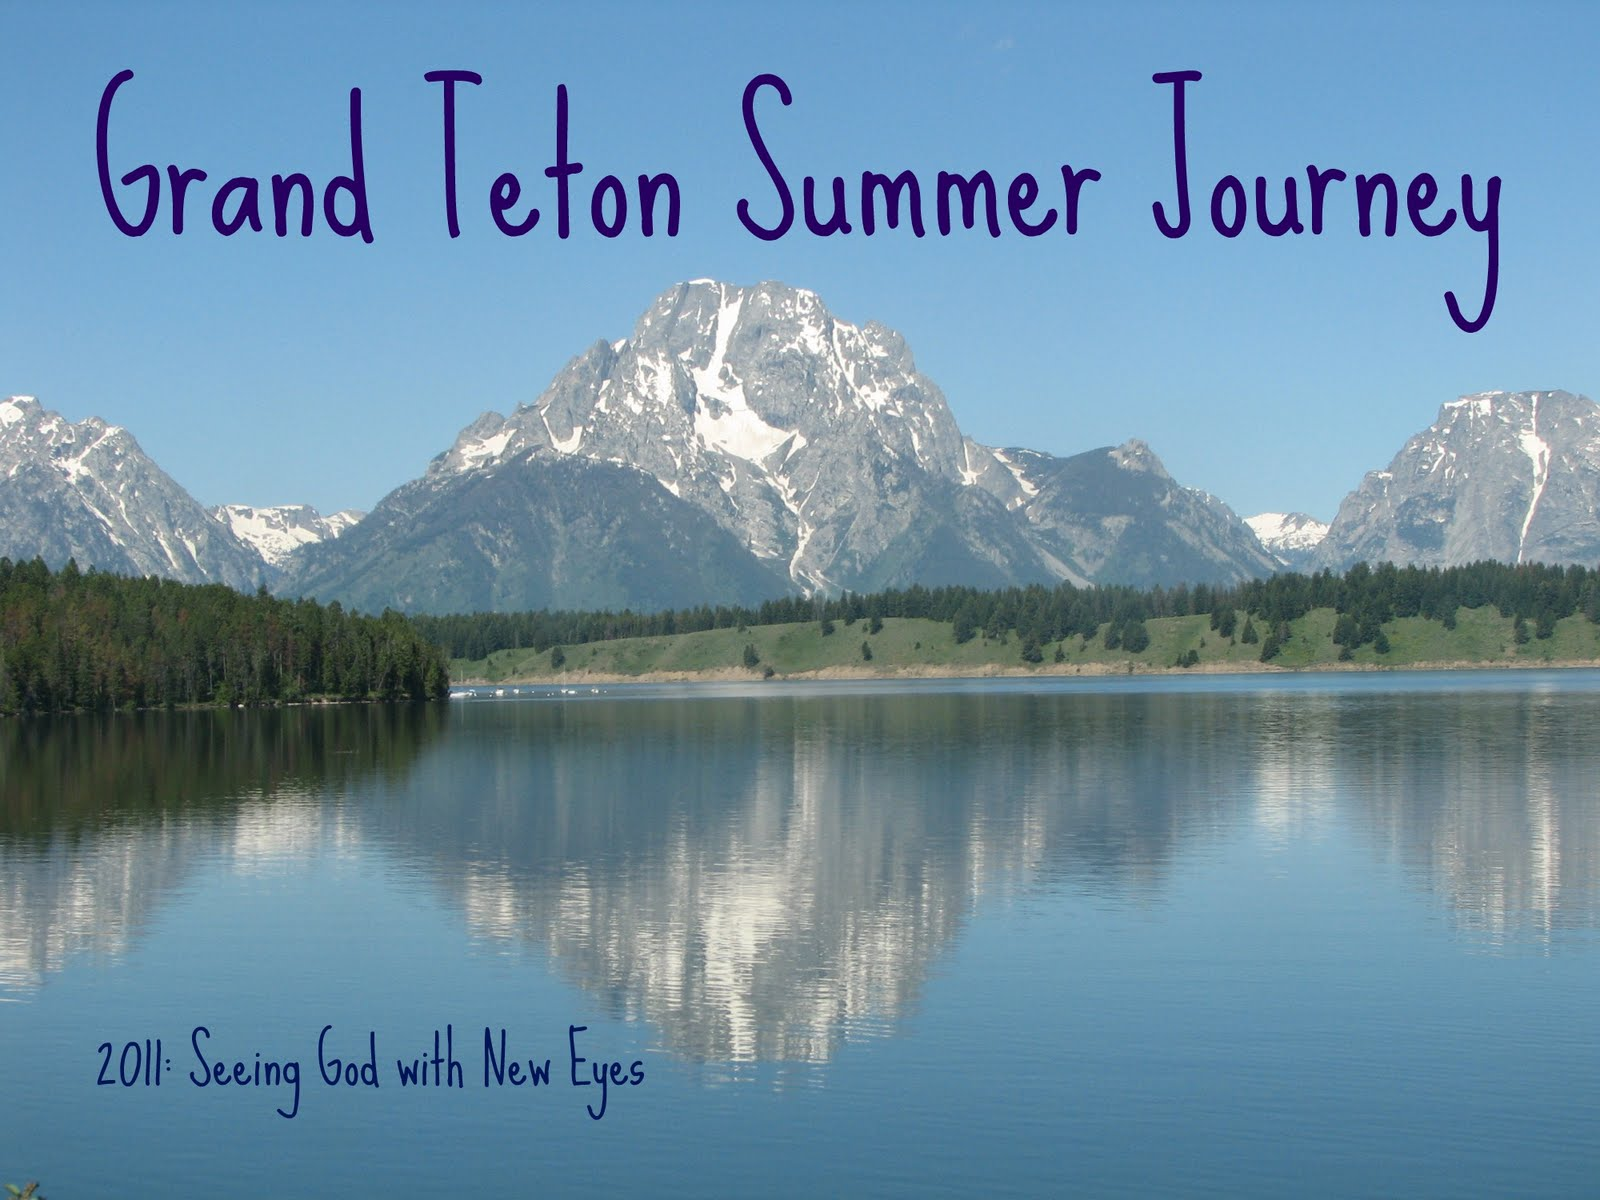 Grand Teton Summer Journey